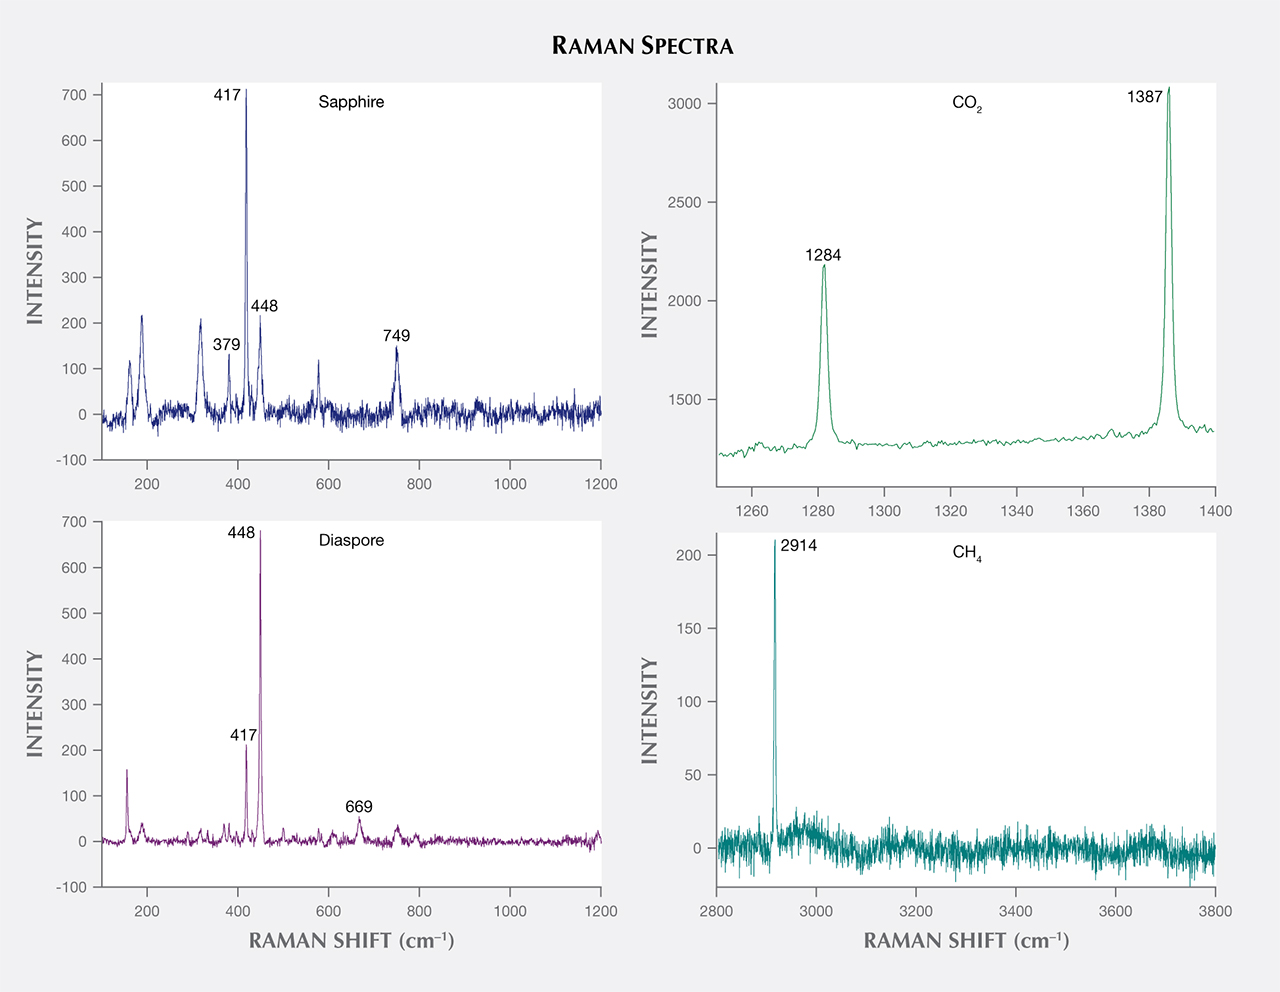 Raman spectra of primary inclusion in sapphire from Sutara, Russia